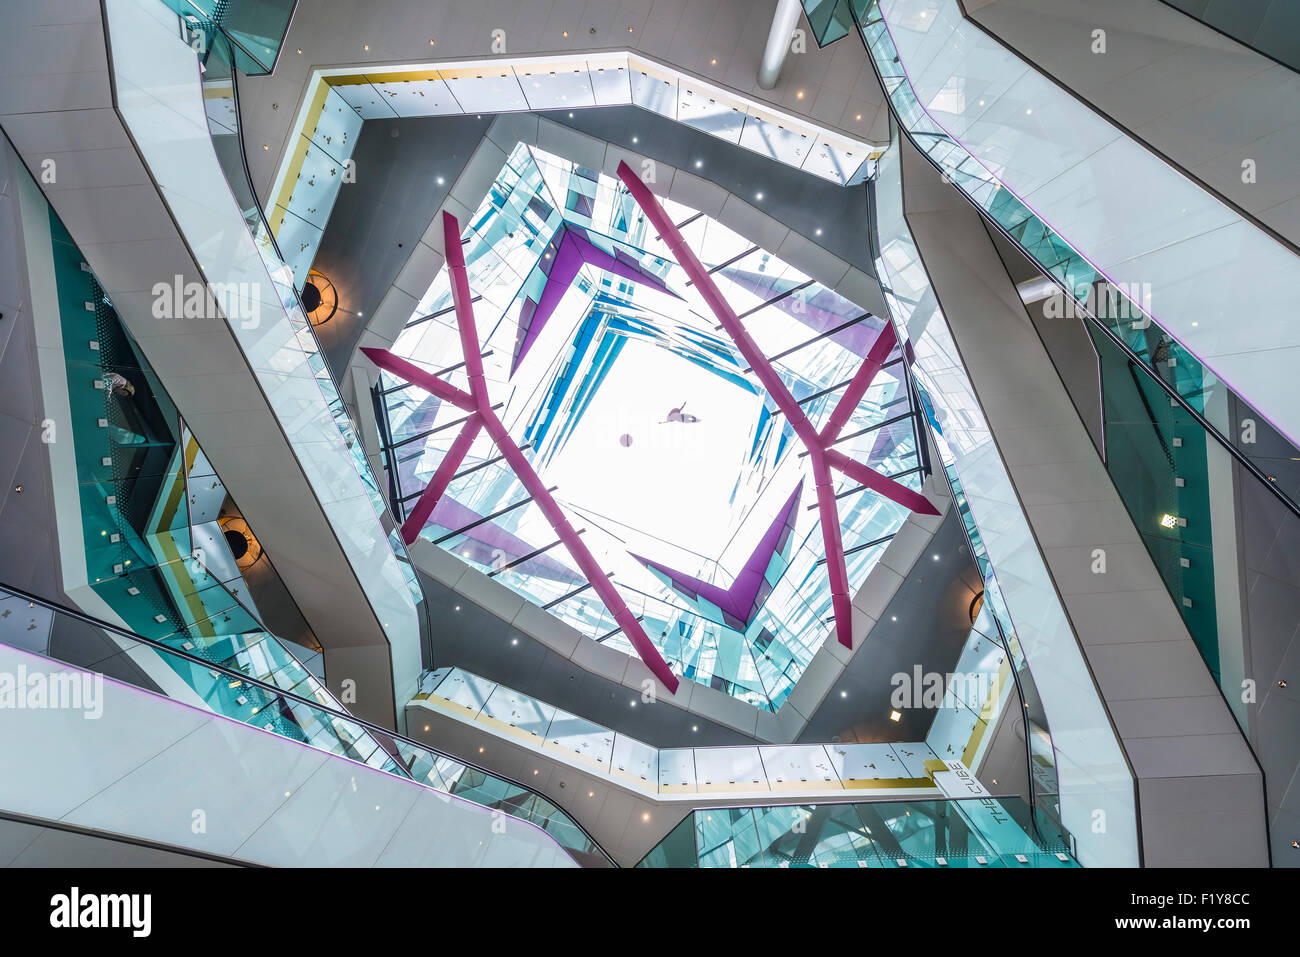 The cube interiors birmingham stock photo royalty free image 87265820 alamy for Cube interiors